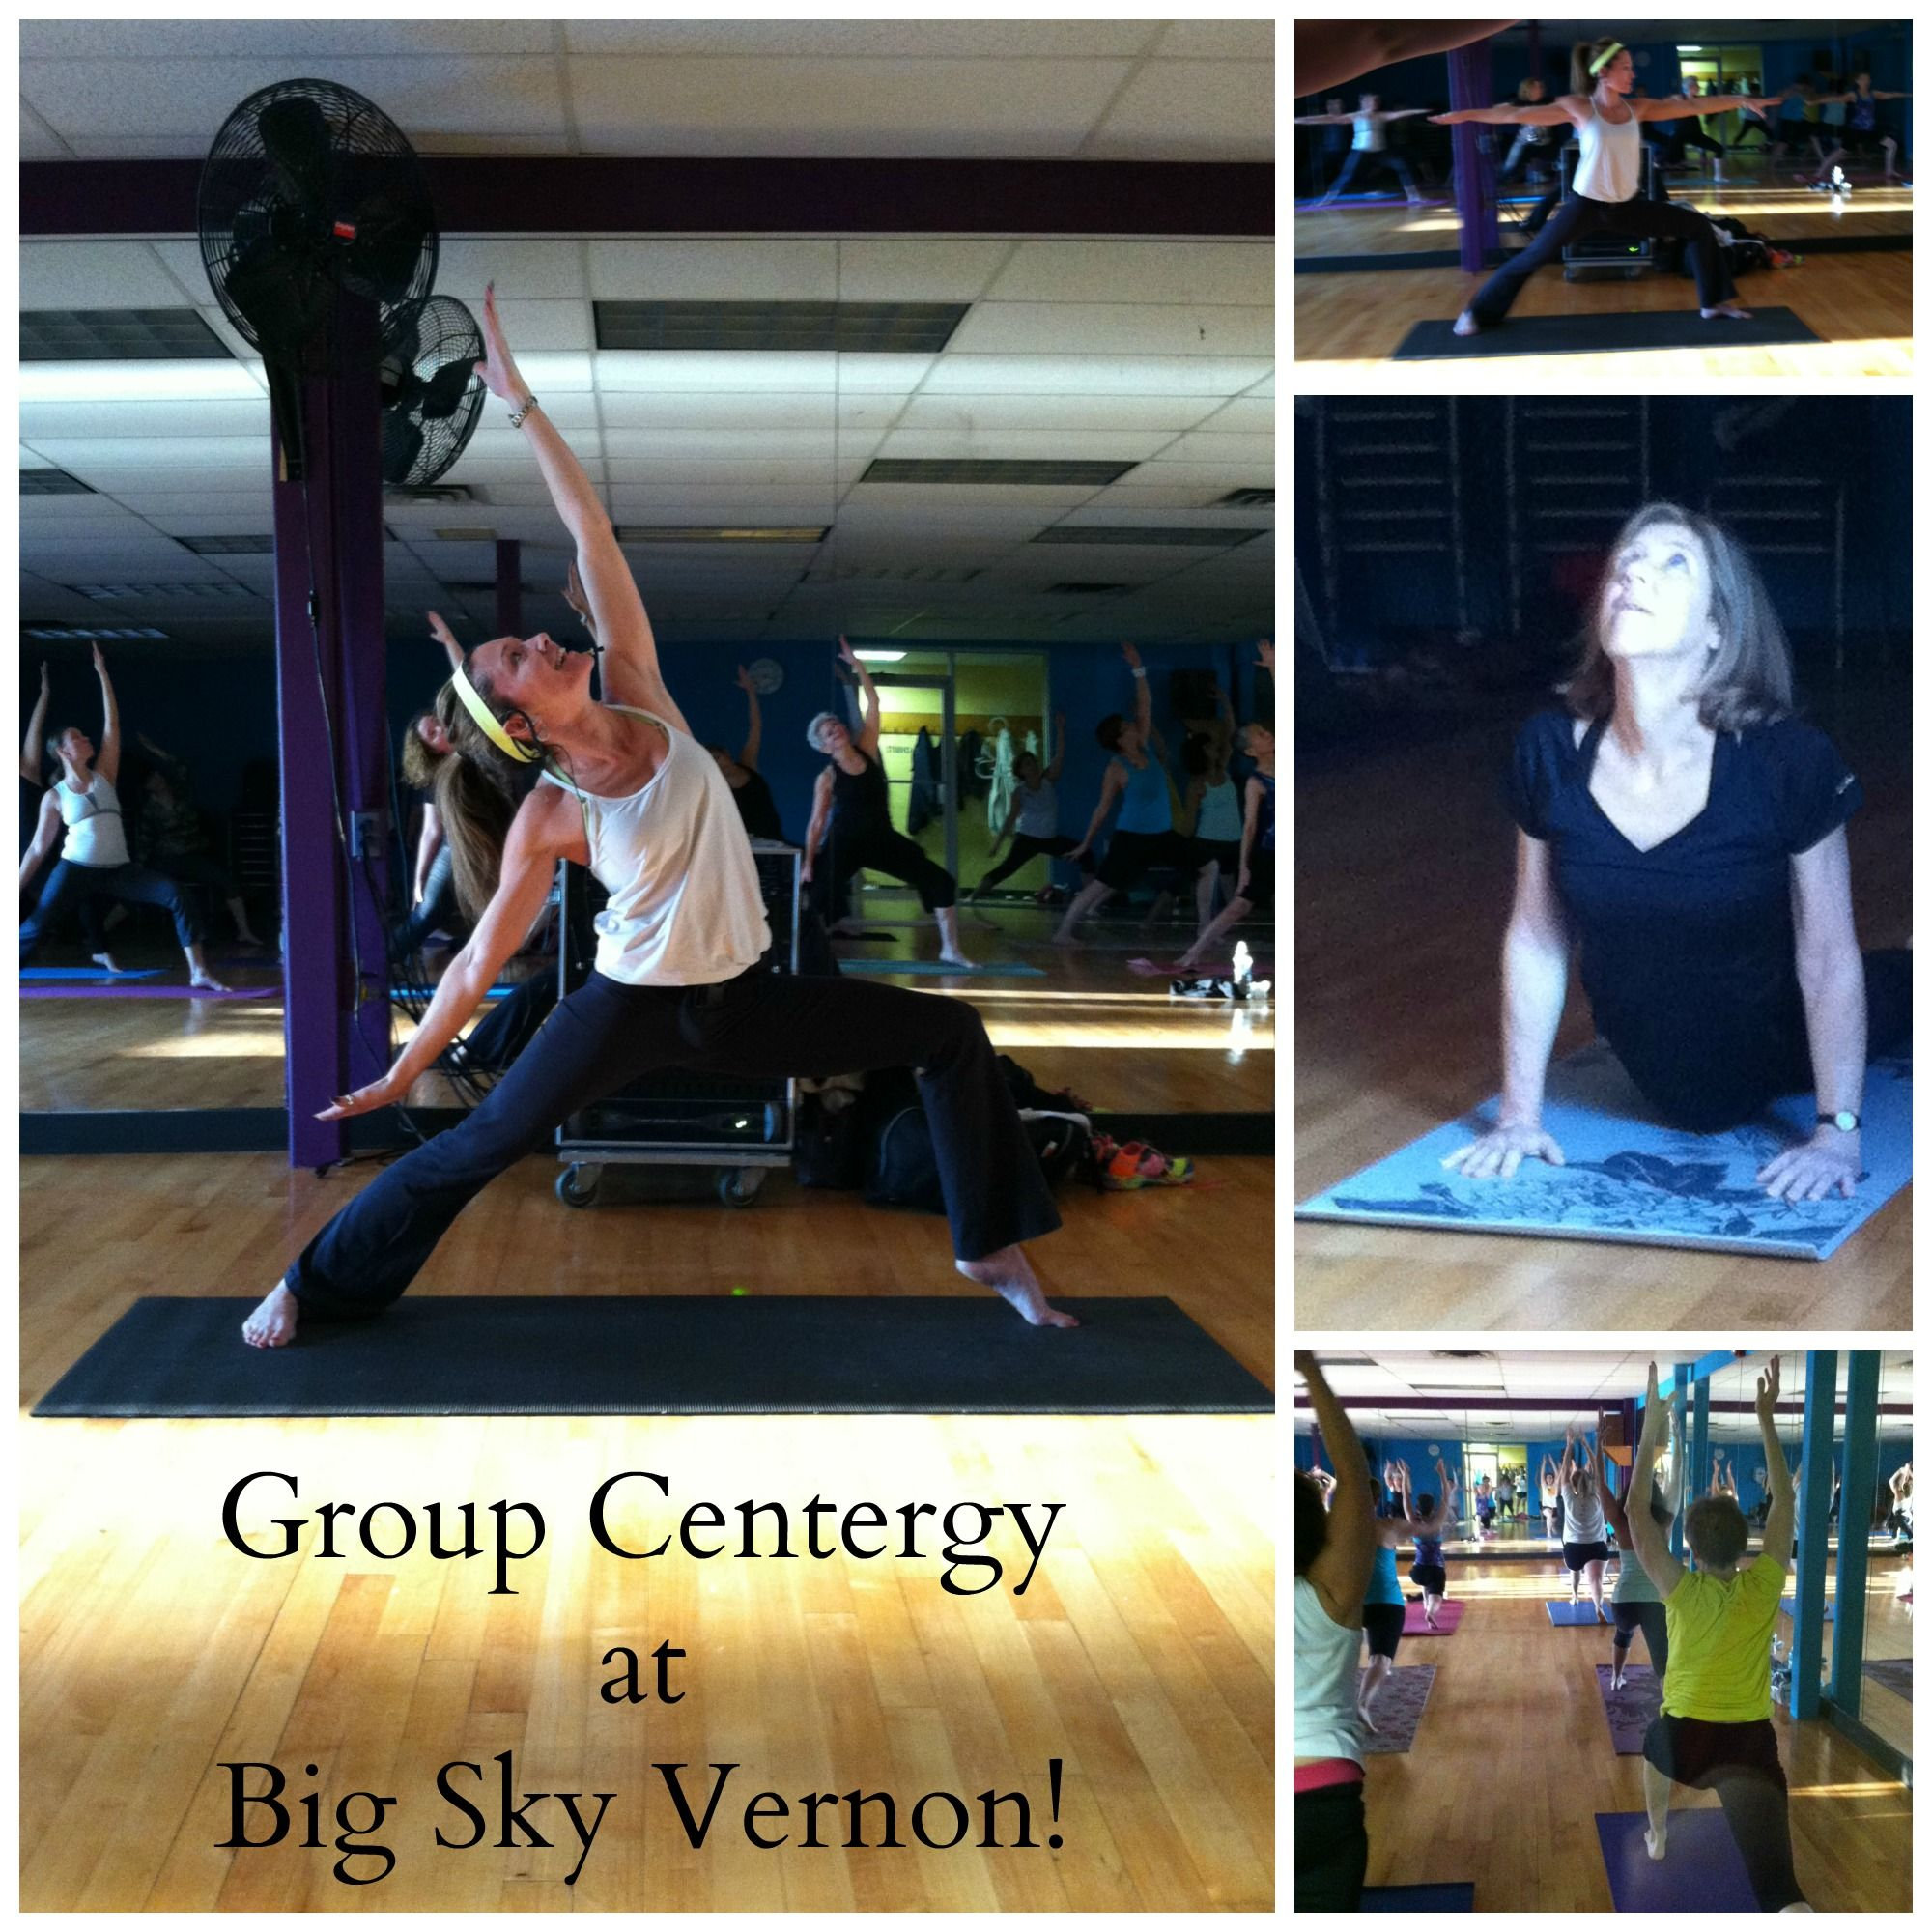 Pin by big sky fitness on meet our team big sky vernon